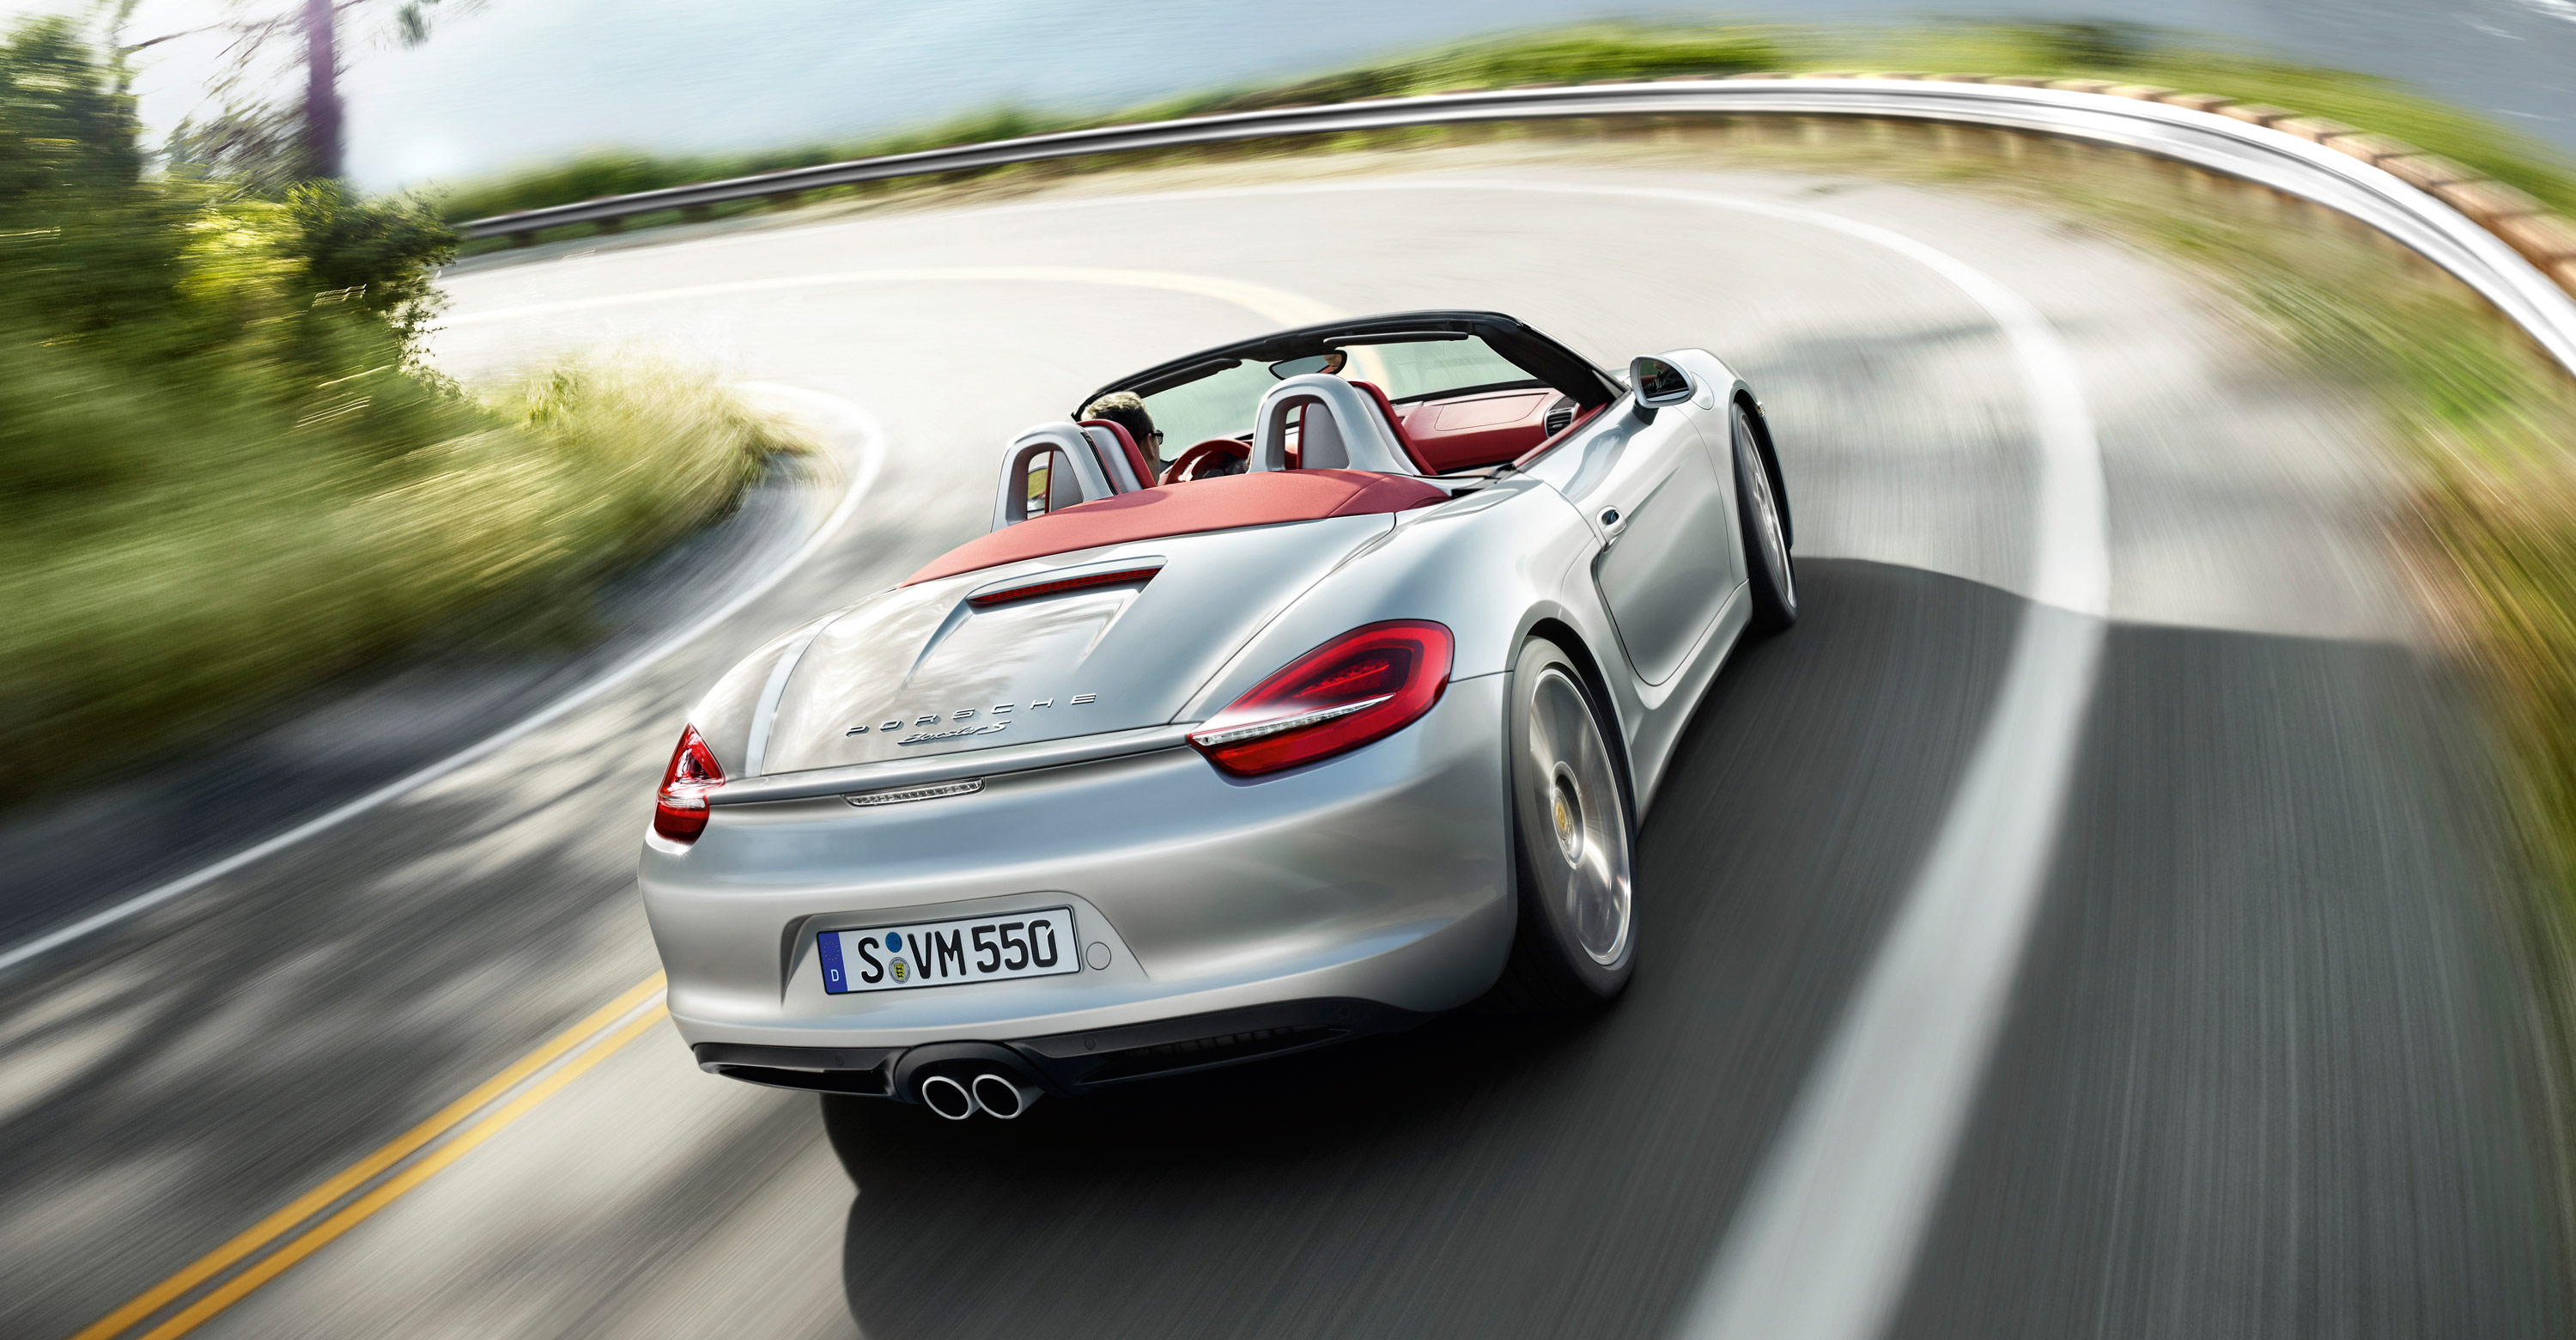 2012 Porsche Boxster S - Rear view